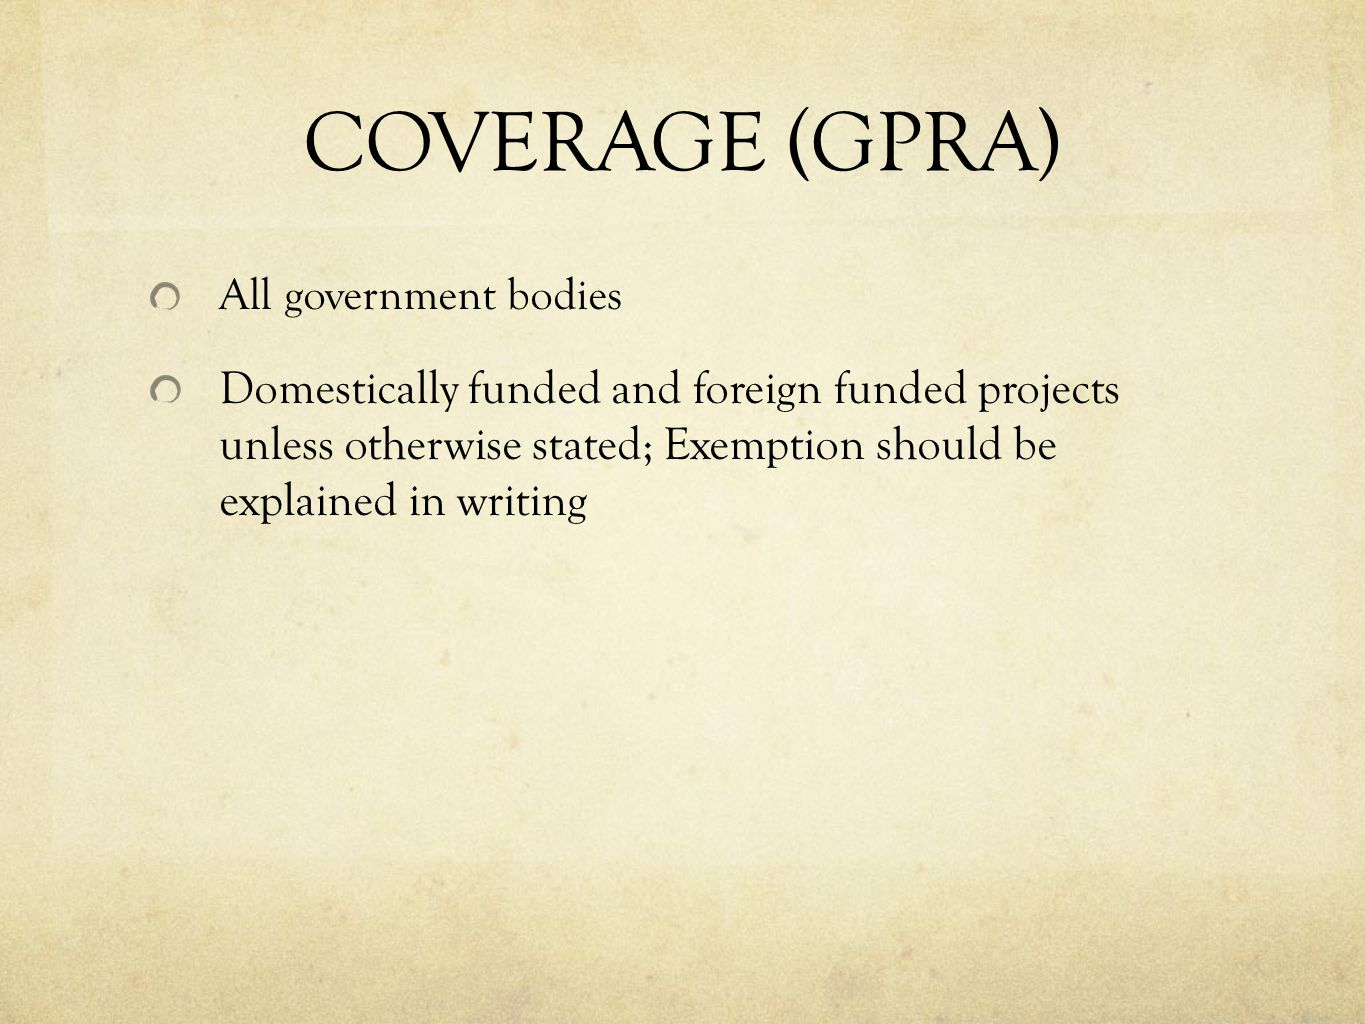 COVERAGE (GPRA) All government bodies Domestically funded and foreign funded projects unless otherwise stated; Exemption should be explained in writin